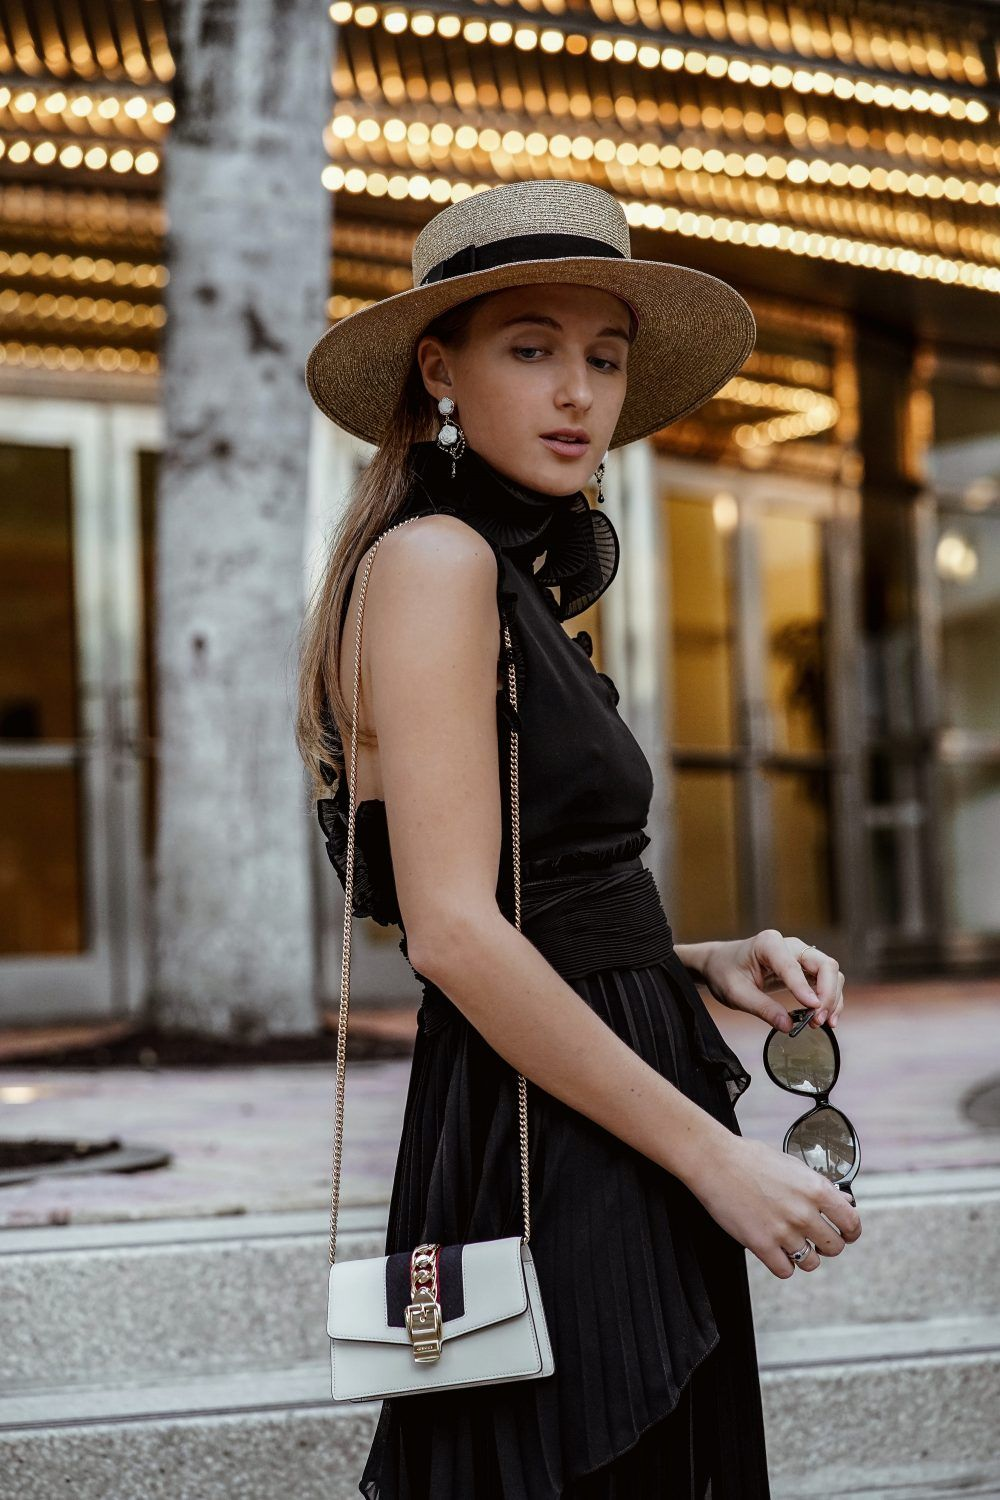 51468efba72c Gucci Papier Hat   Gucci Sylvie Bag outfit in street style story by Miami  fashion blogger Tanya Litkovska